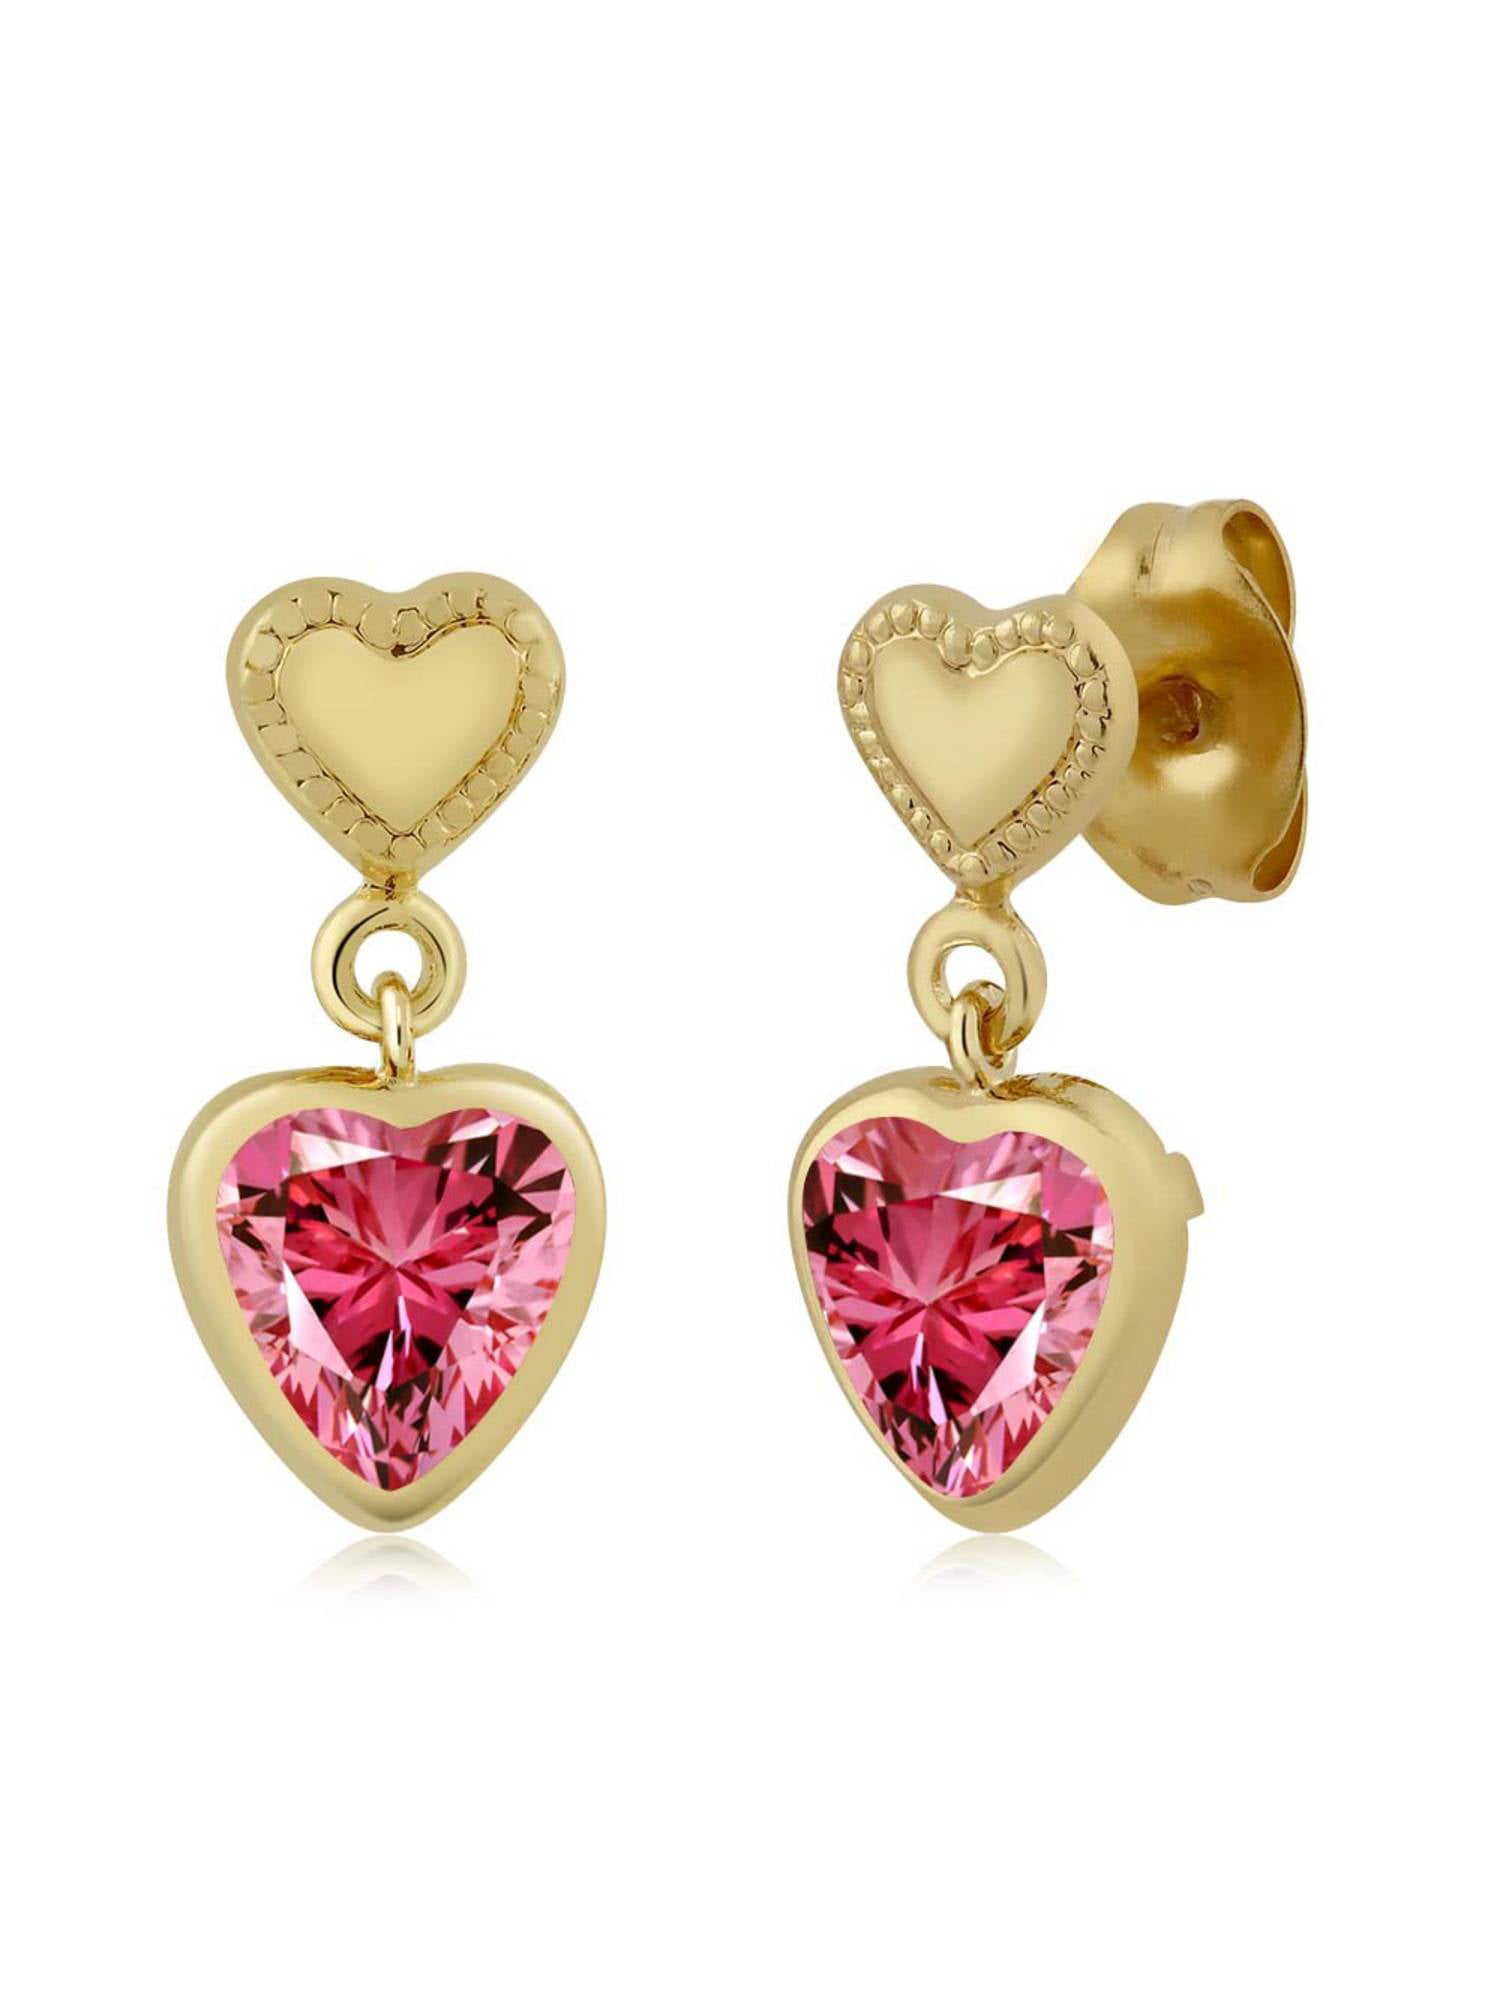 1.48 Ct Fancy Pink Brass Yellow Gold Plated Brass Earrings Made With Swarovski Zirconia by